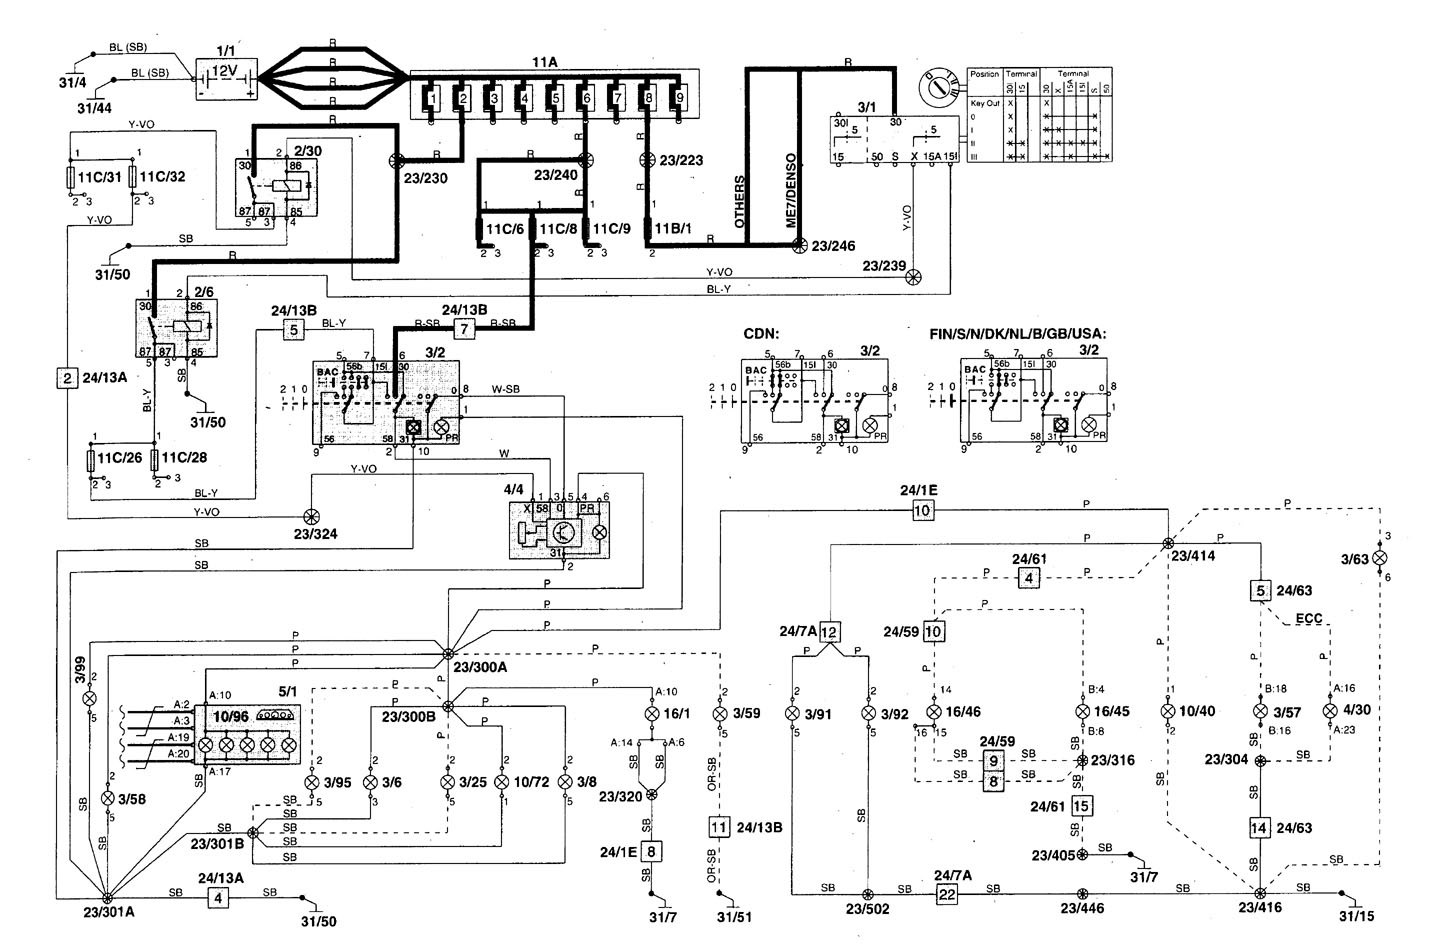 Wiring Diagram Instrumentation Piping And Pin Relay Schematic Http Wwwnitroustechcom Forums Volvo S70 1999 2000 Diagrams Alpine Stereo Denso 13b